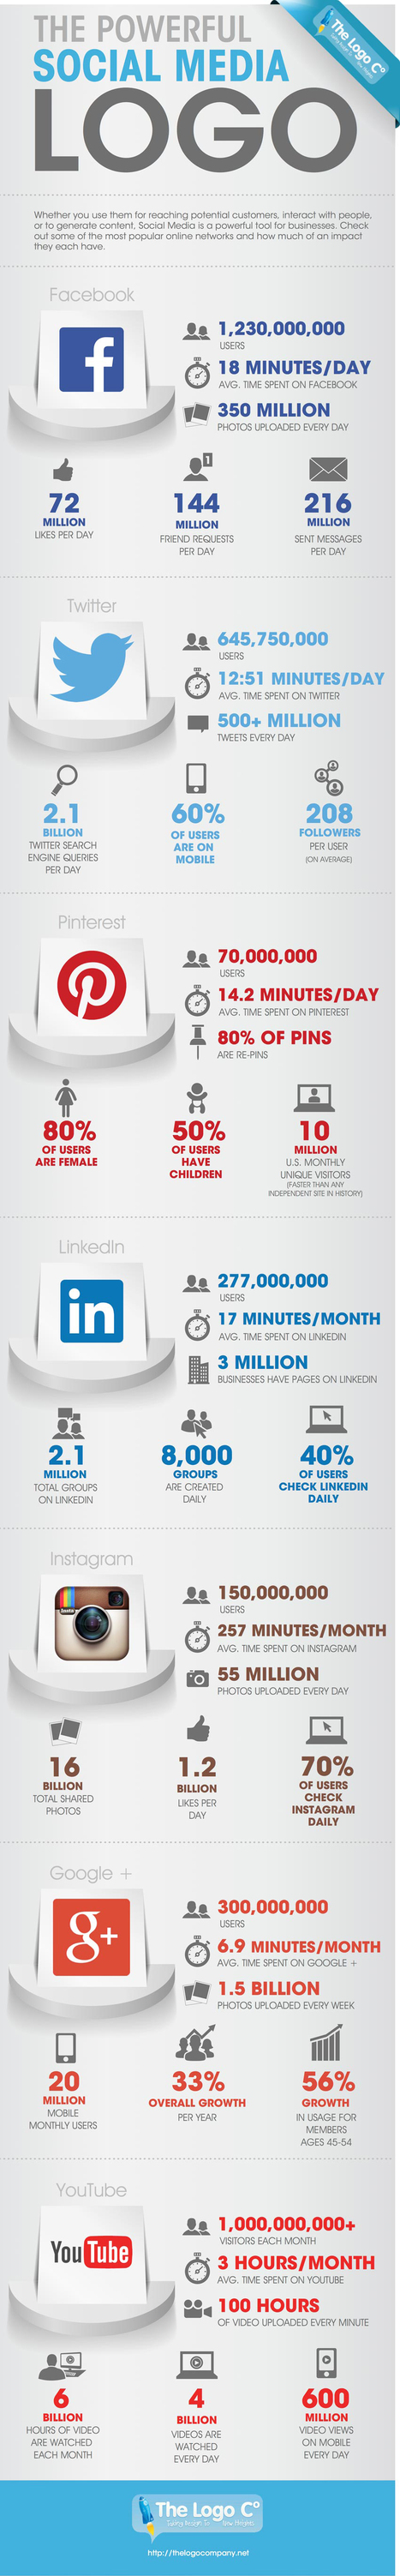 We are SOCIAL Therefore We ARE: Lies, Damn Lies & Statistics on Social Nets [Infographic] | MarketingHits | Scoop.it